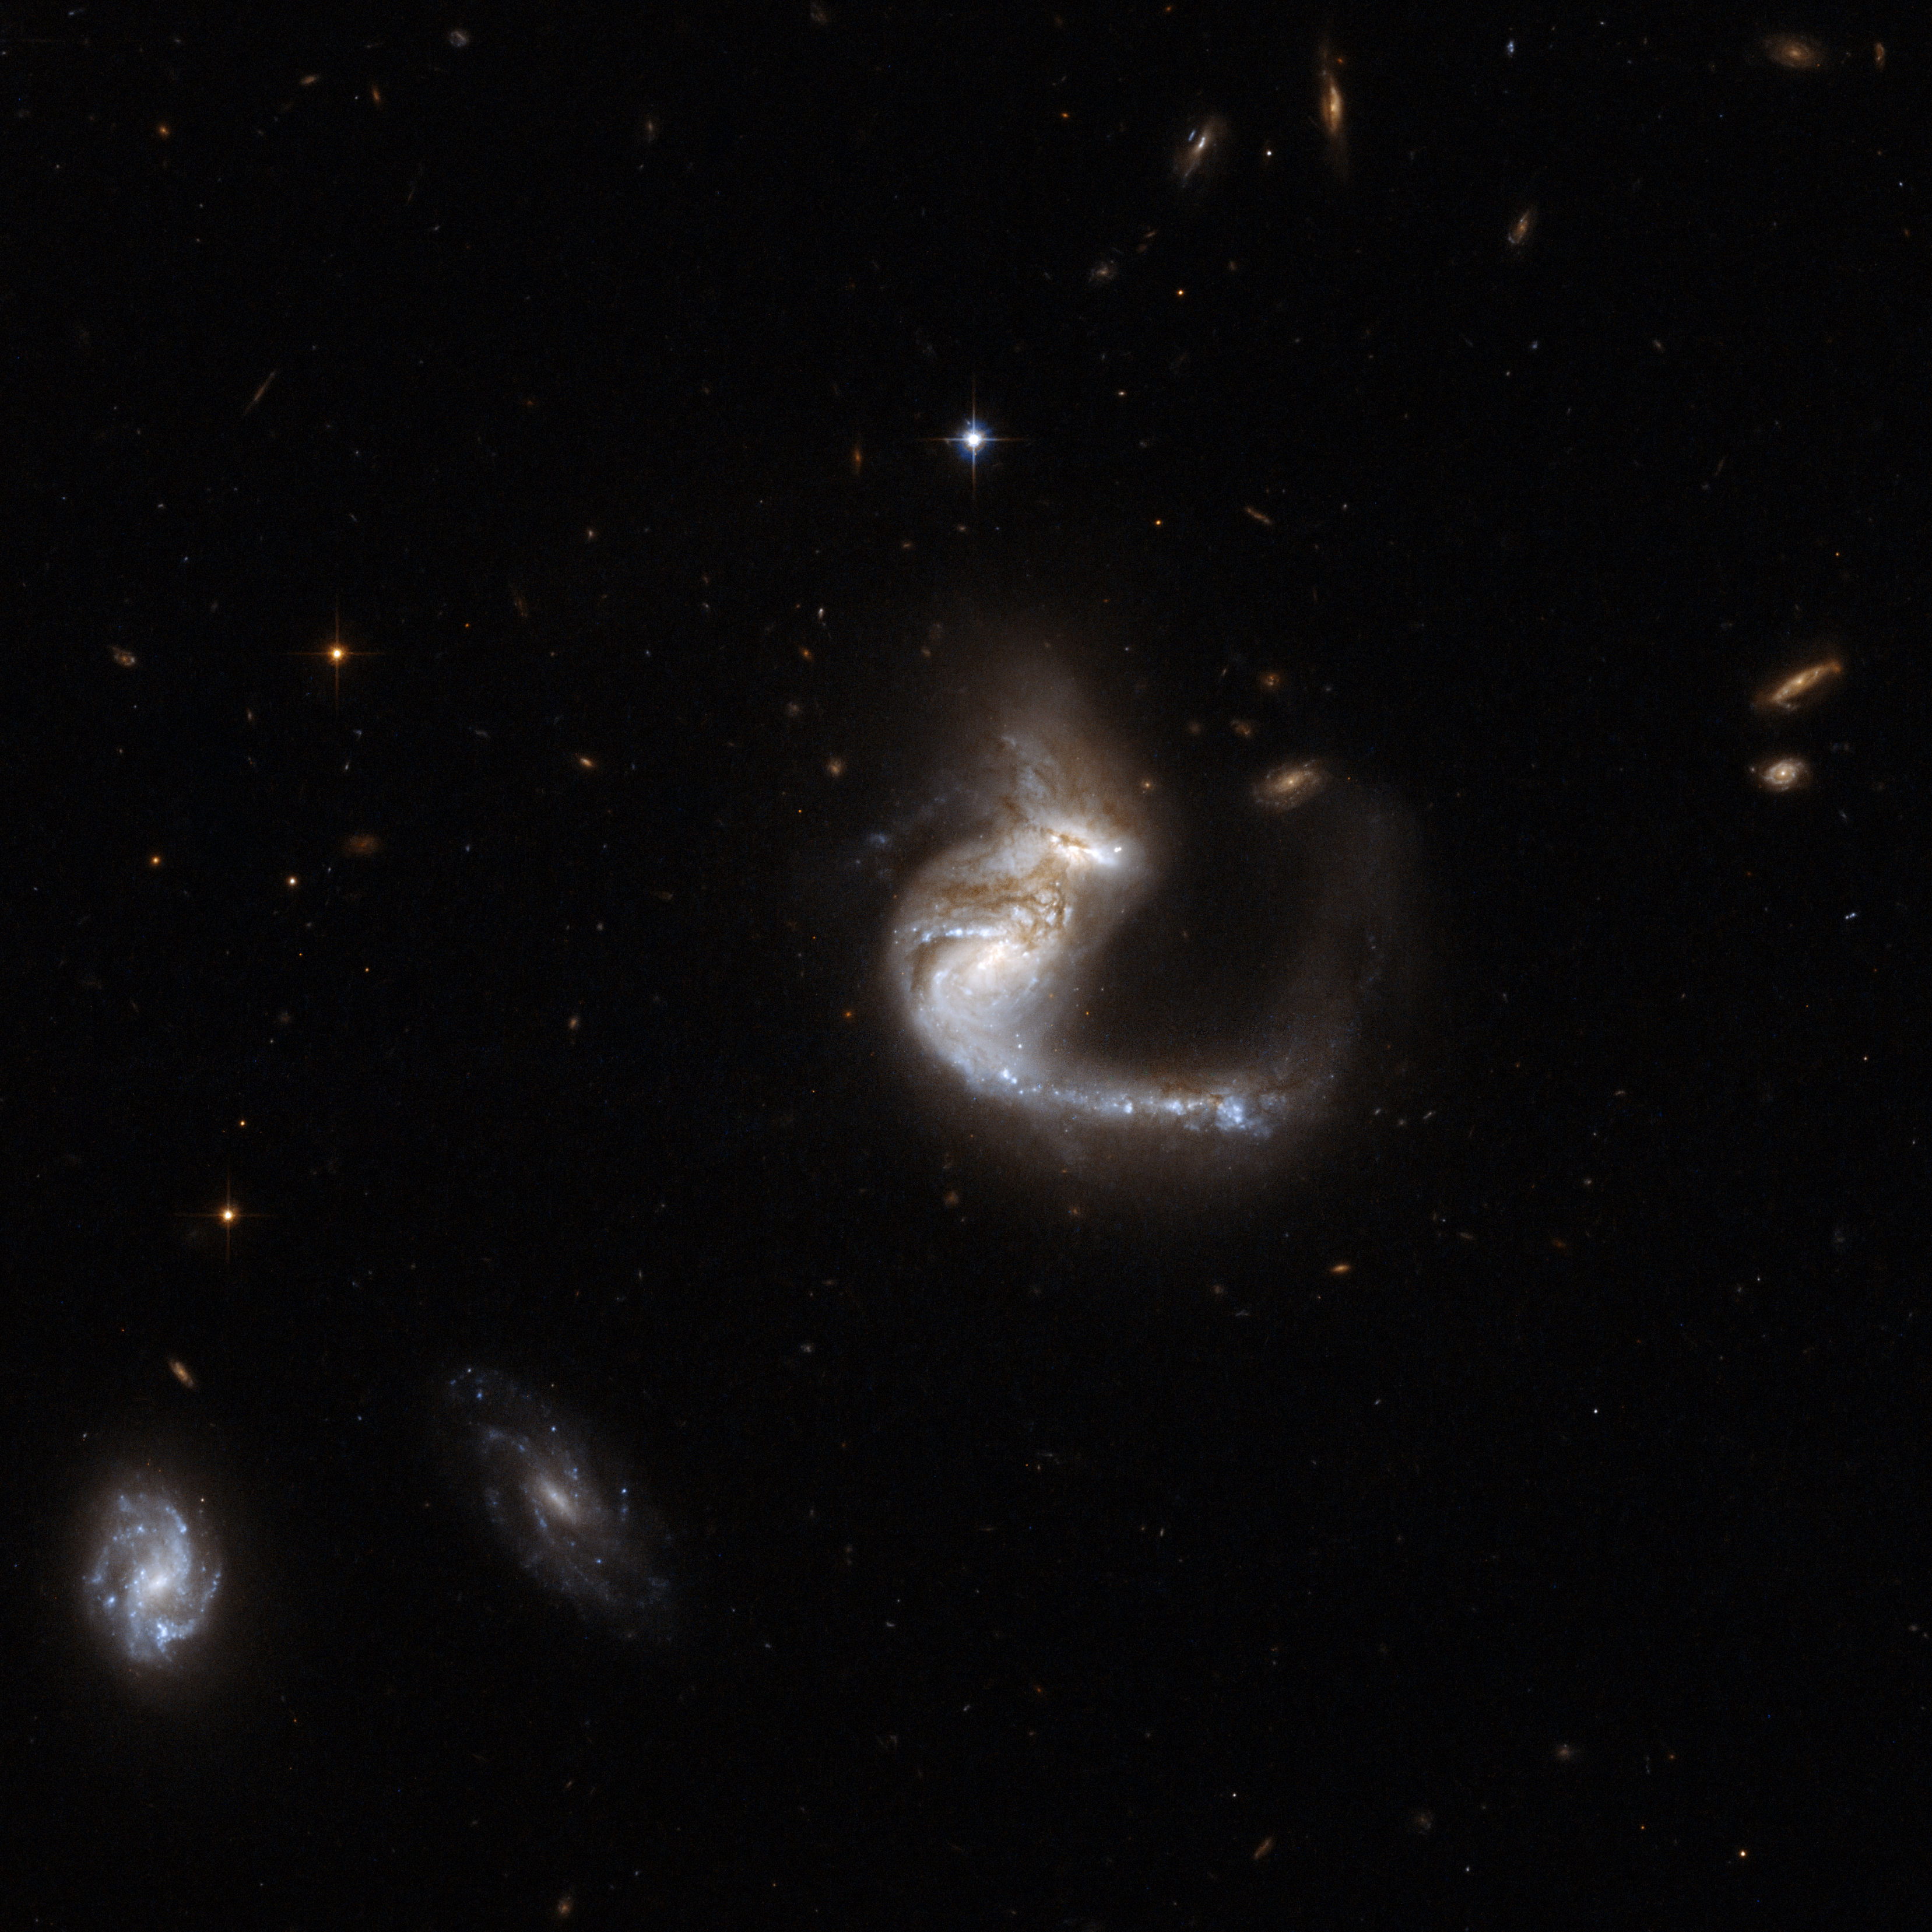 Hubble Interacting Galaxy UGC 4881 (2008-04-24)